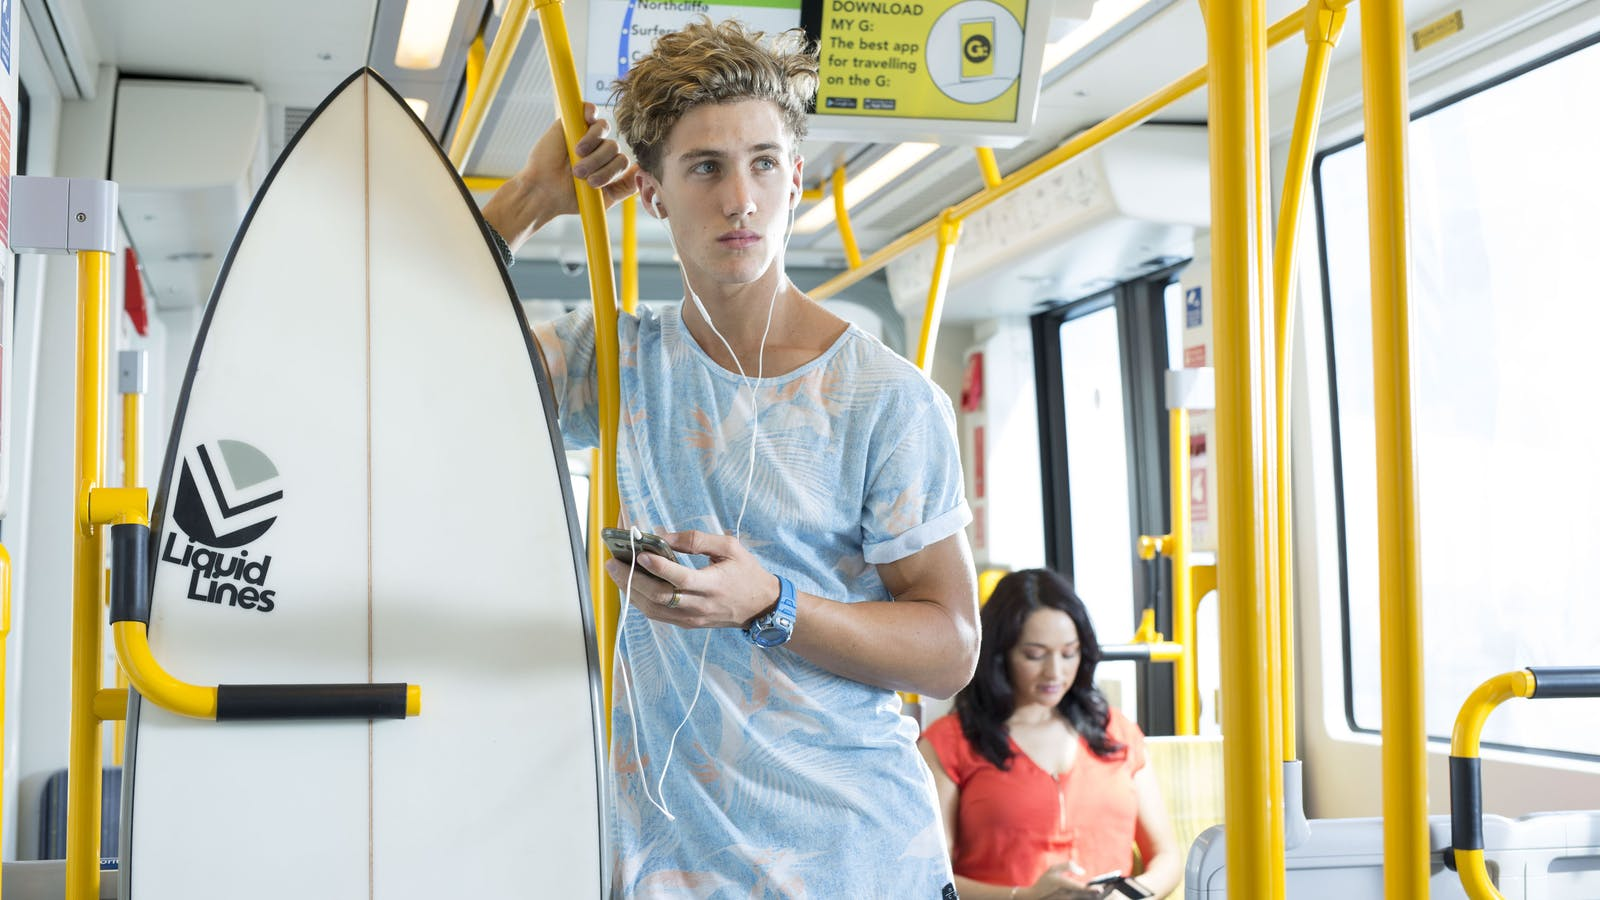 Gold Coast tram and bus travel